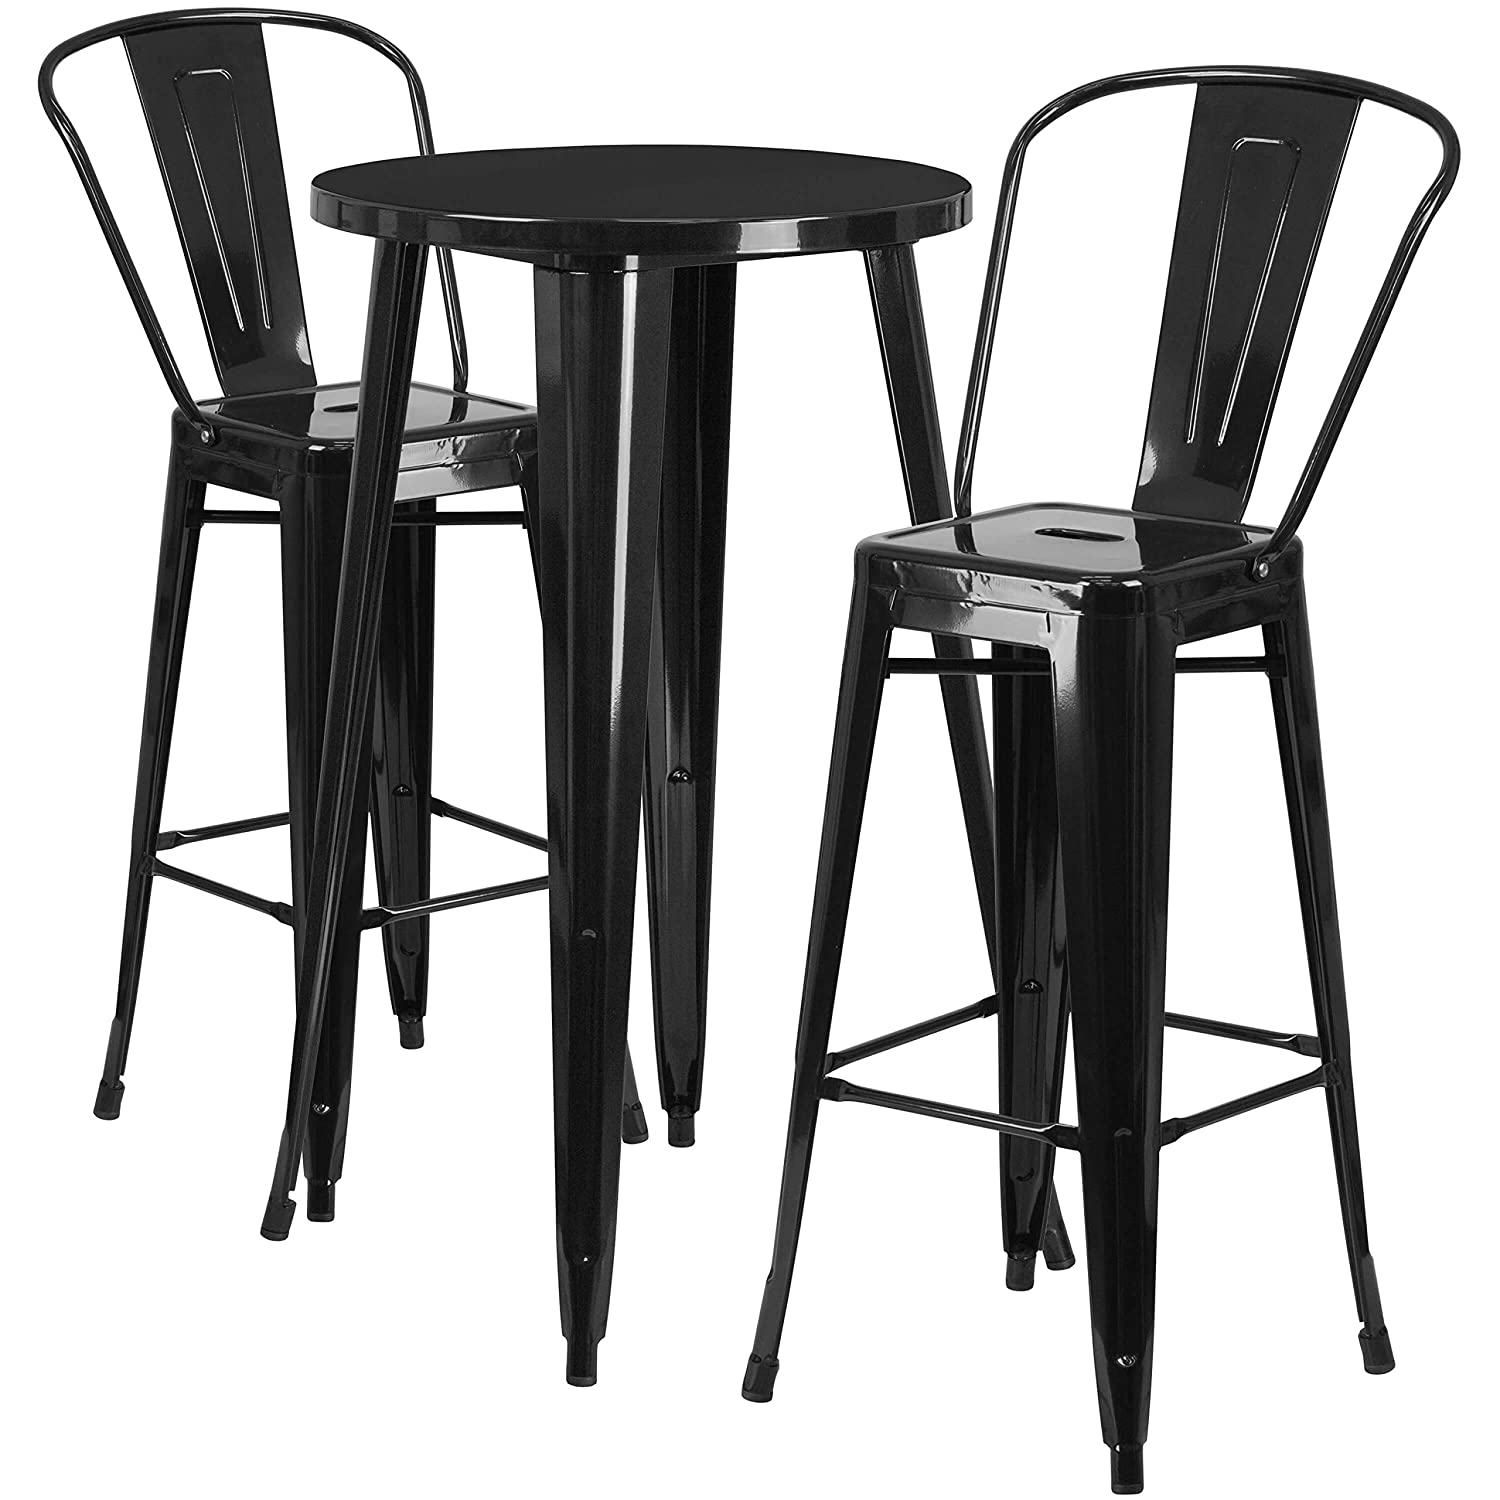 Amazon.com: Cafe Tables and Chairs - Cubano Bar Height ...